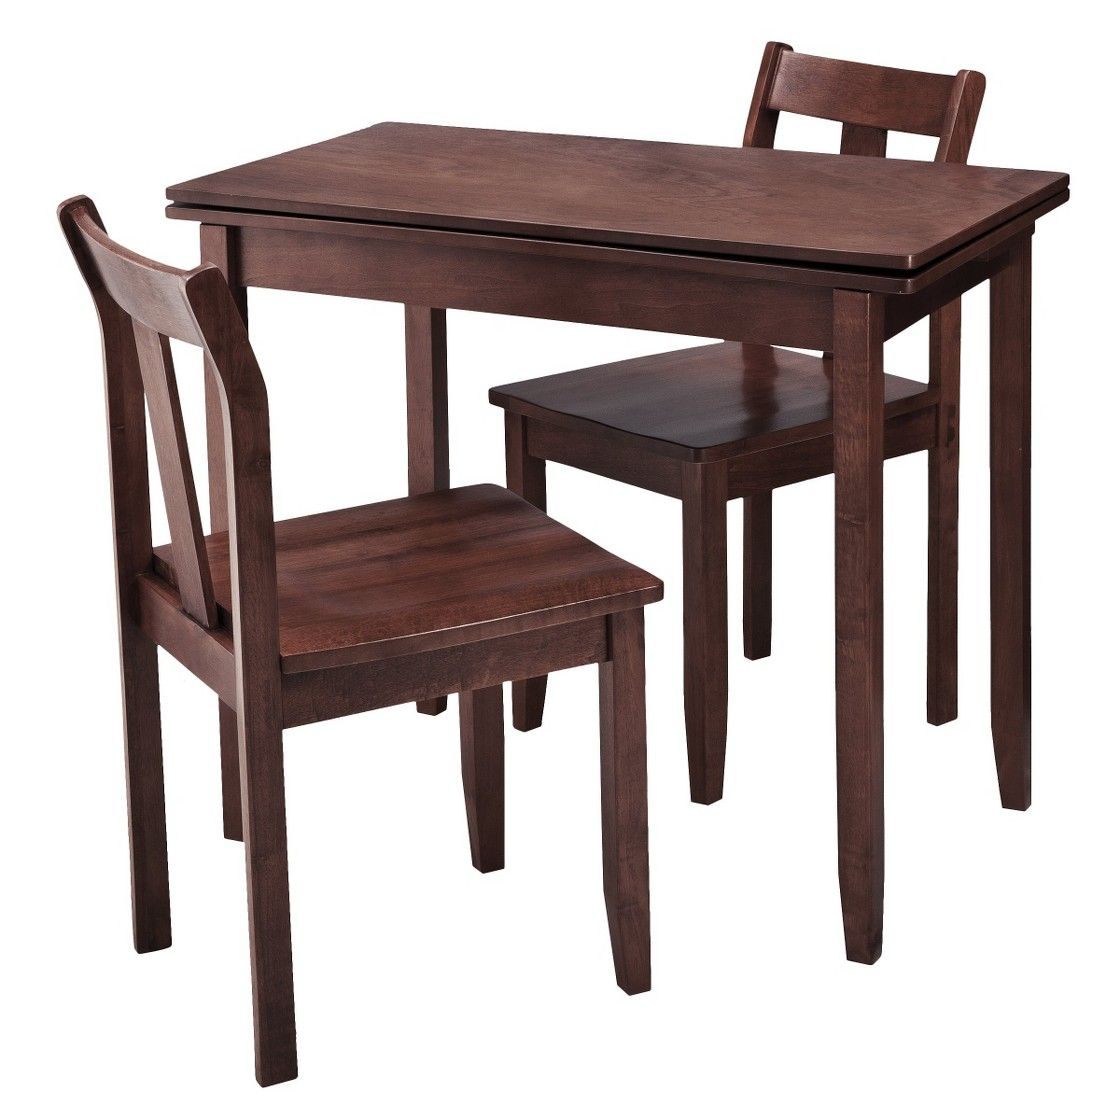 Target Kitchen Sets: Threshold 3-pc. Expandable Dining Set With Storage